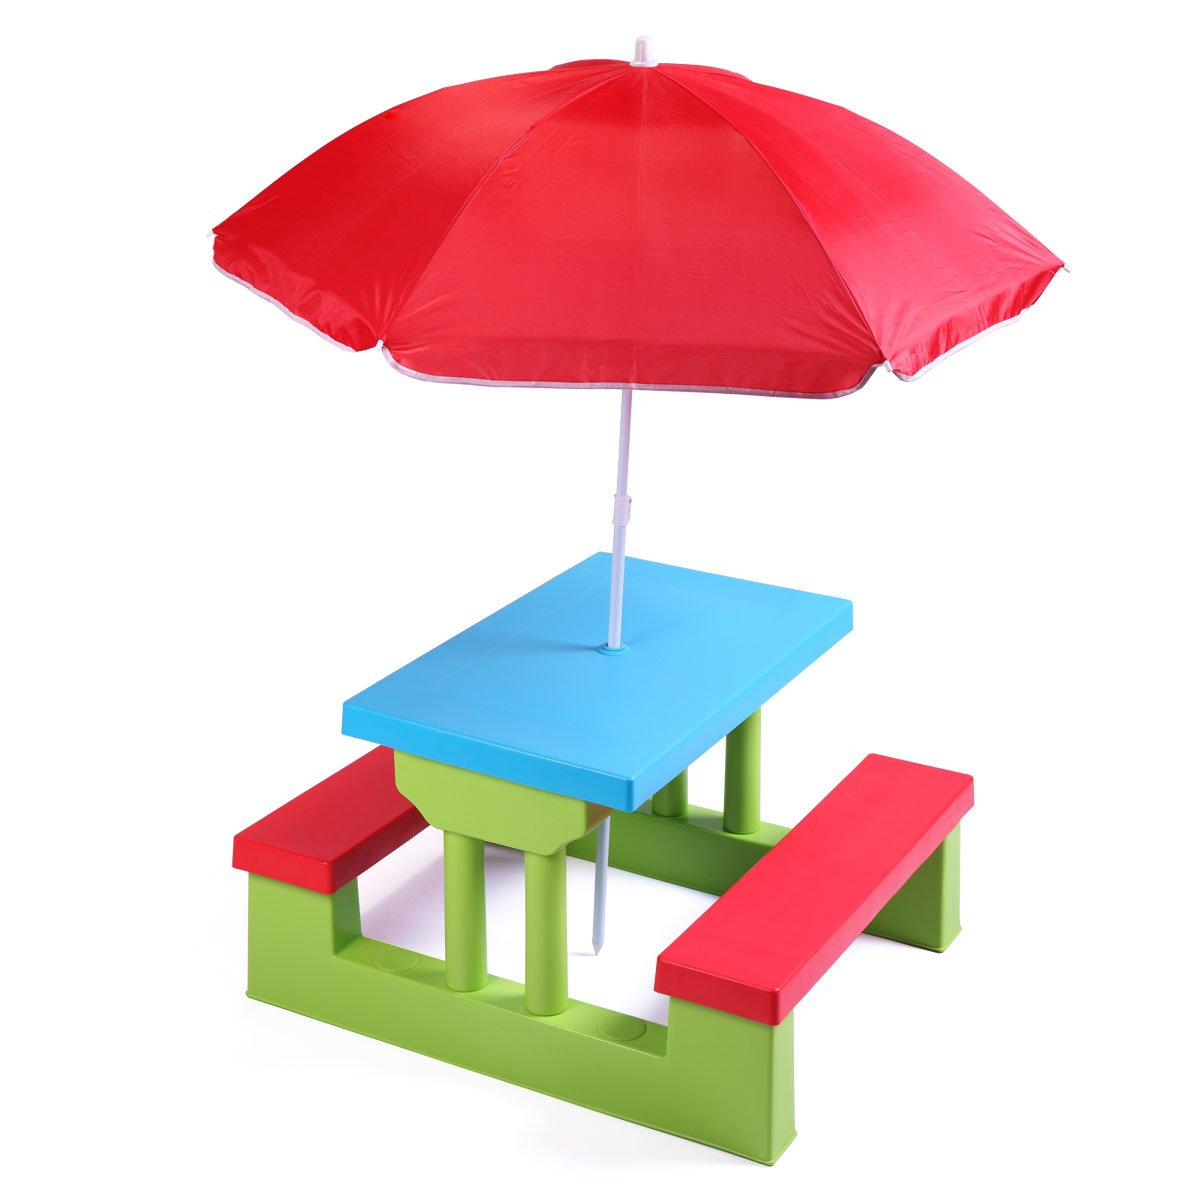 Tobbi Colorful Kids Picnic Table Bench Set Portable Garden Yard Bench w/Removable Umbrella